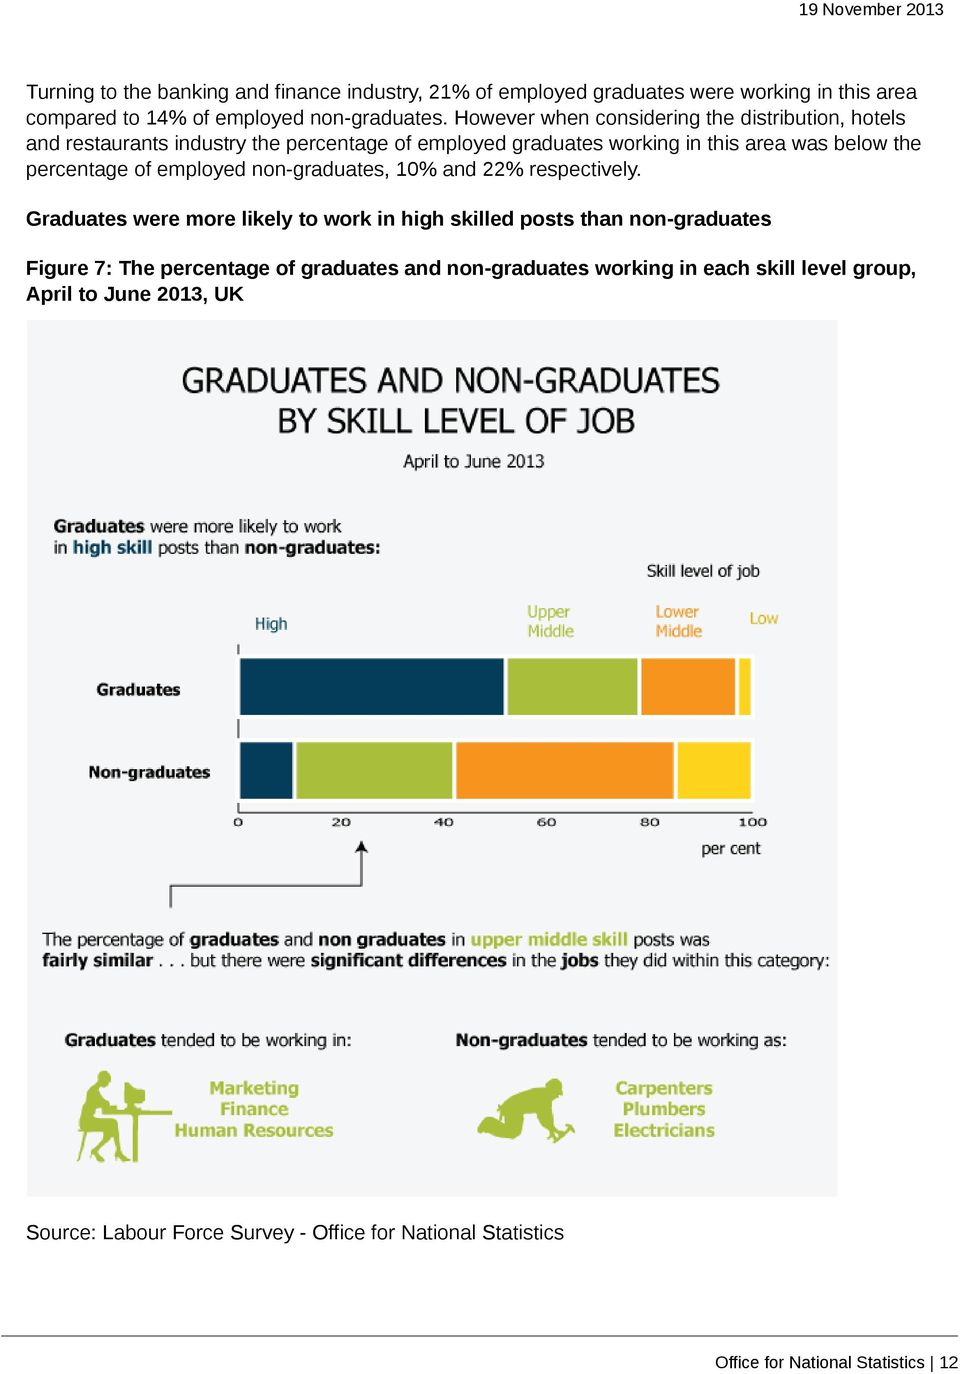 of employed non-graduates, 10% and 22% respectively.